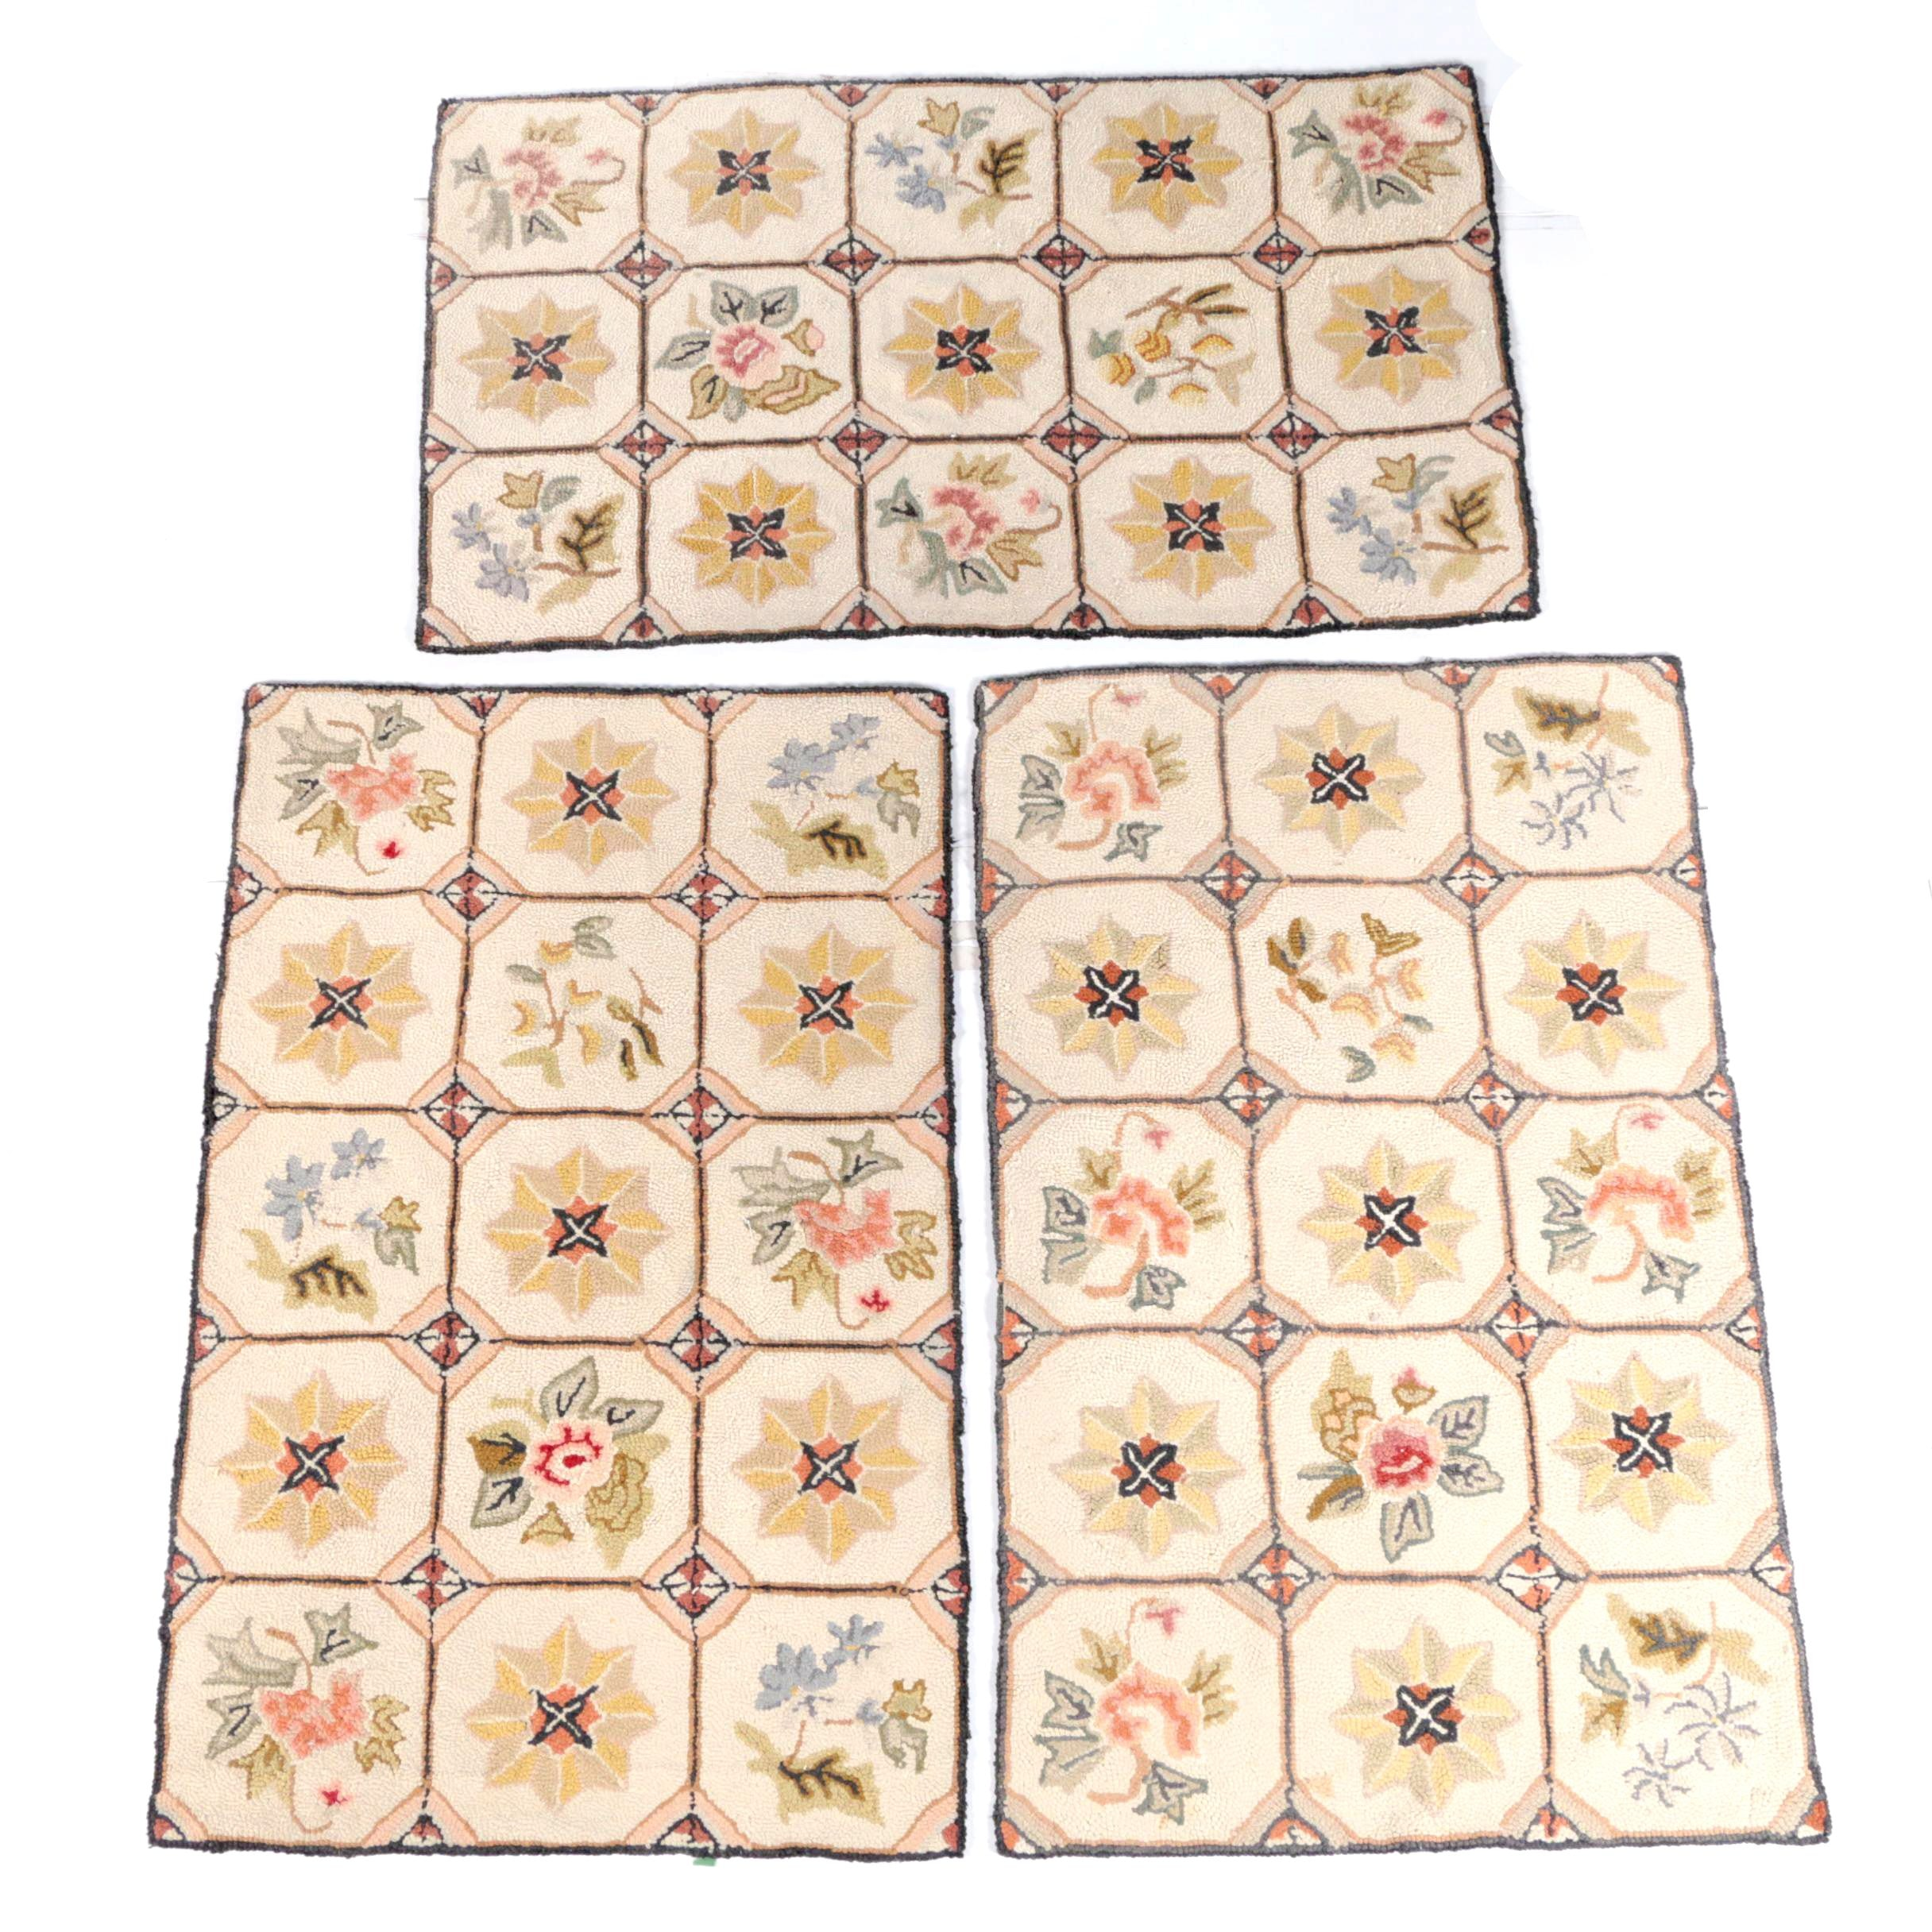 Hooked Floral Wool Area Rugs